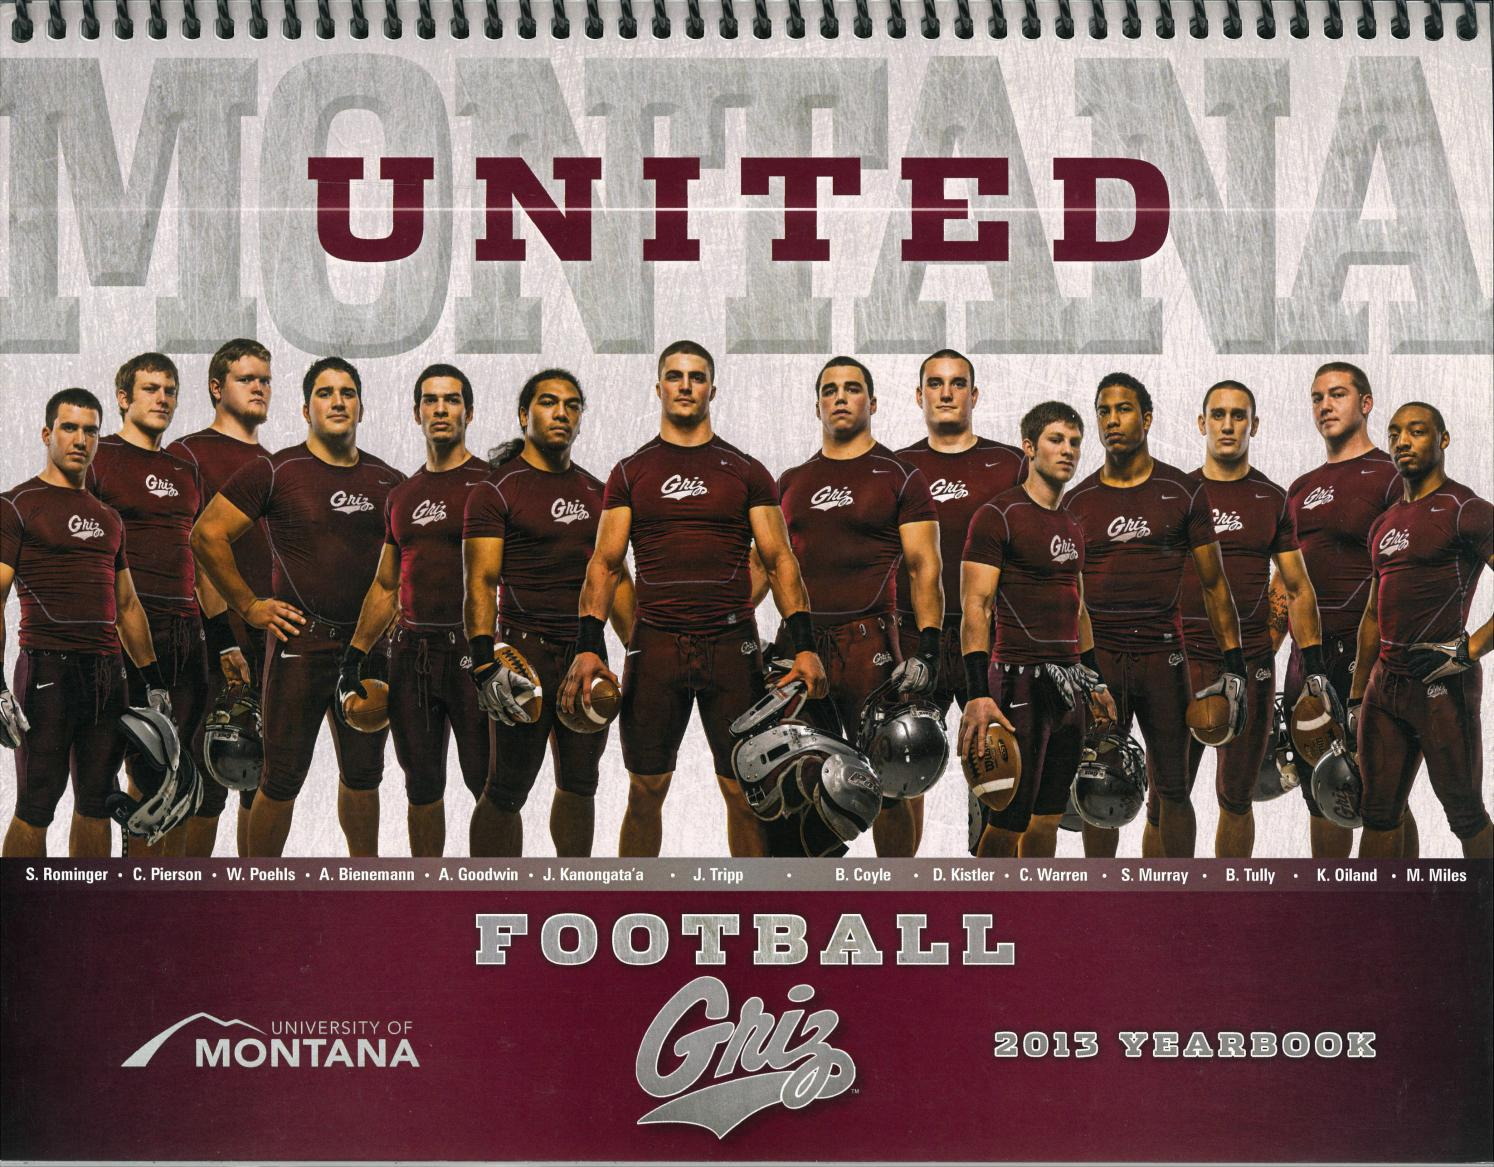 2013 Media Guide by University of Montana Athletics - issuu